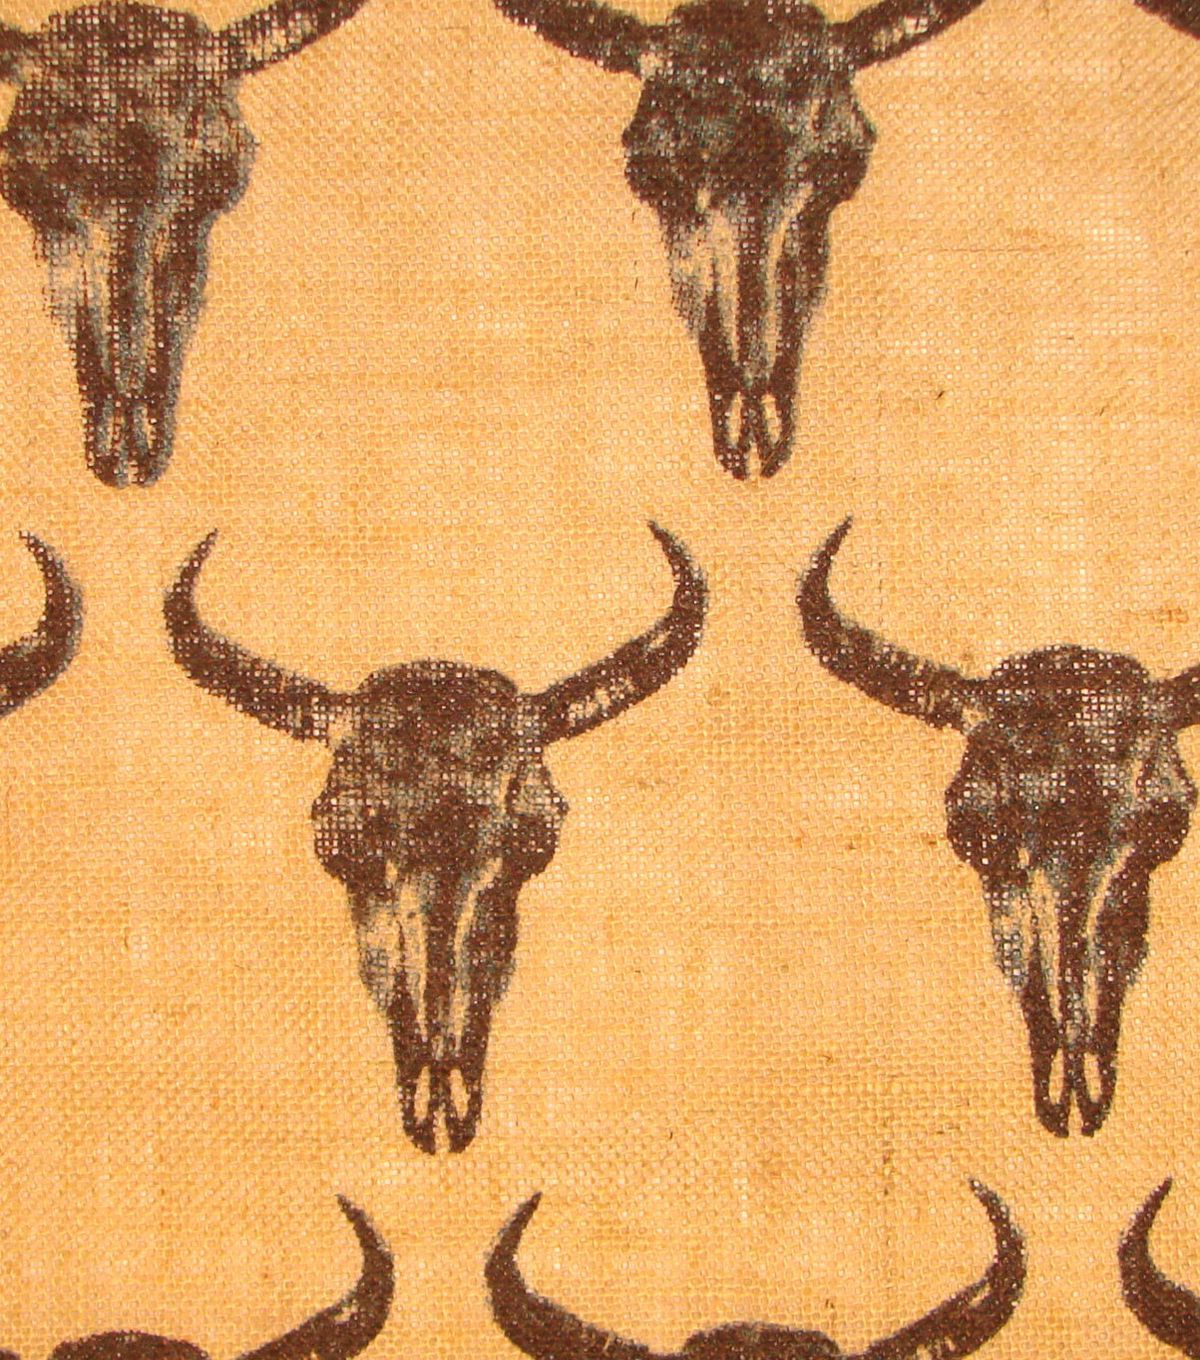 Steer Skull On Burlap